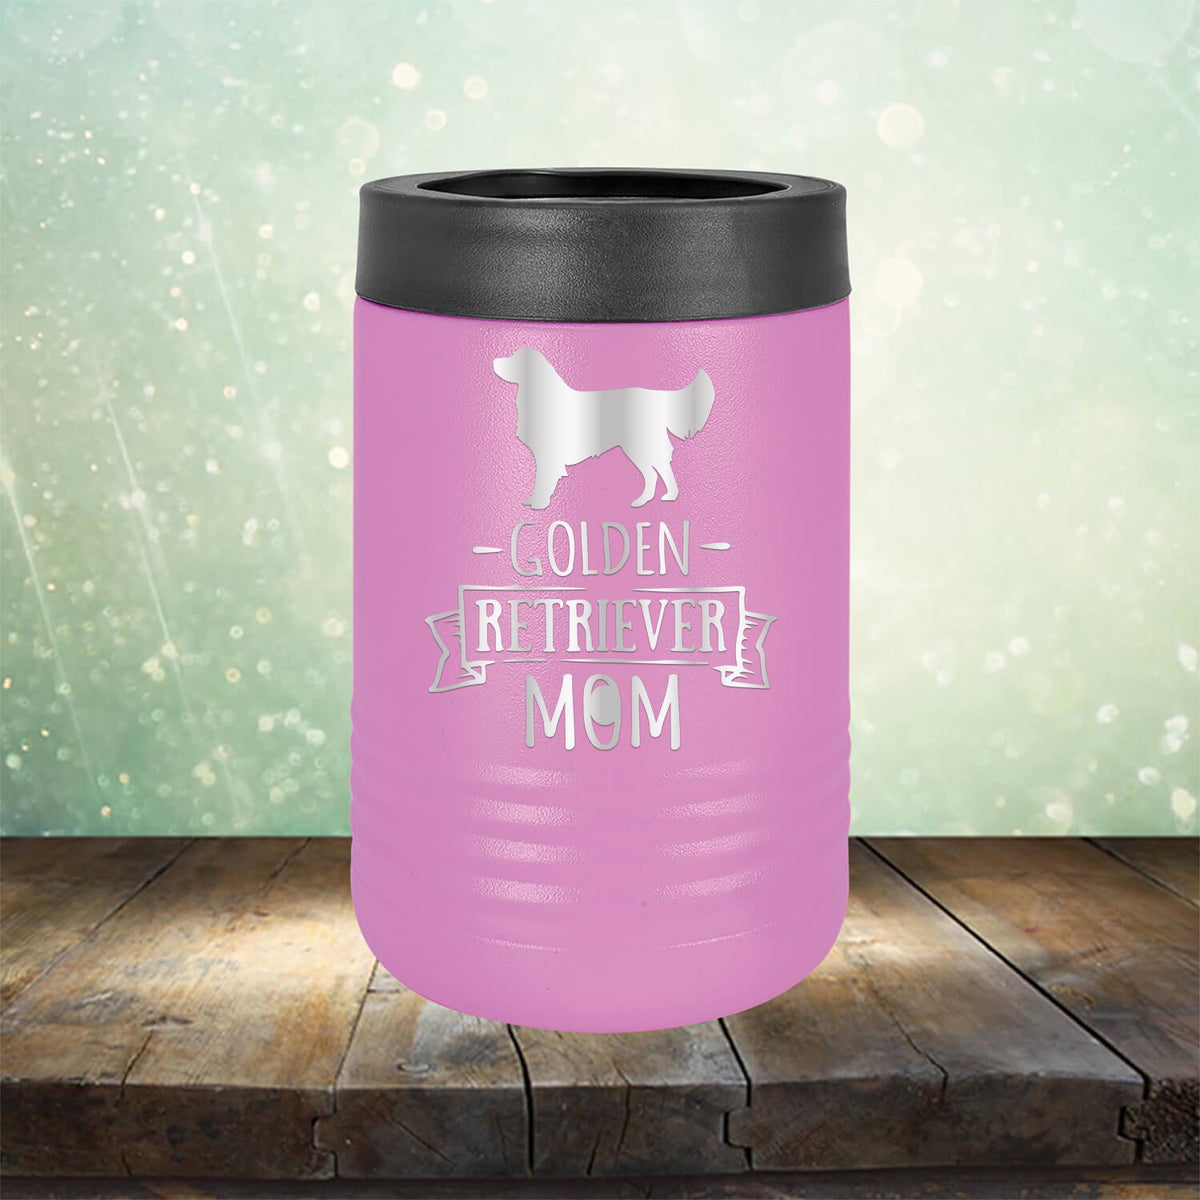 Golden Retriever Mom